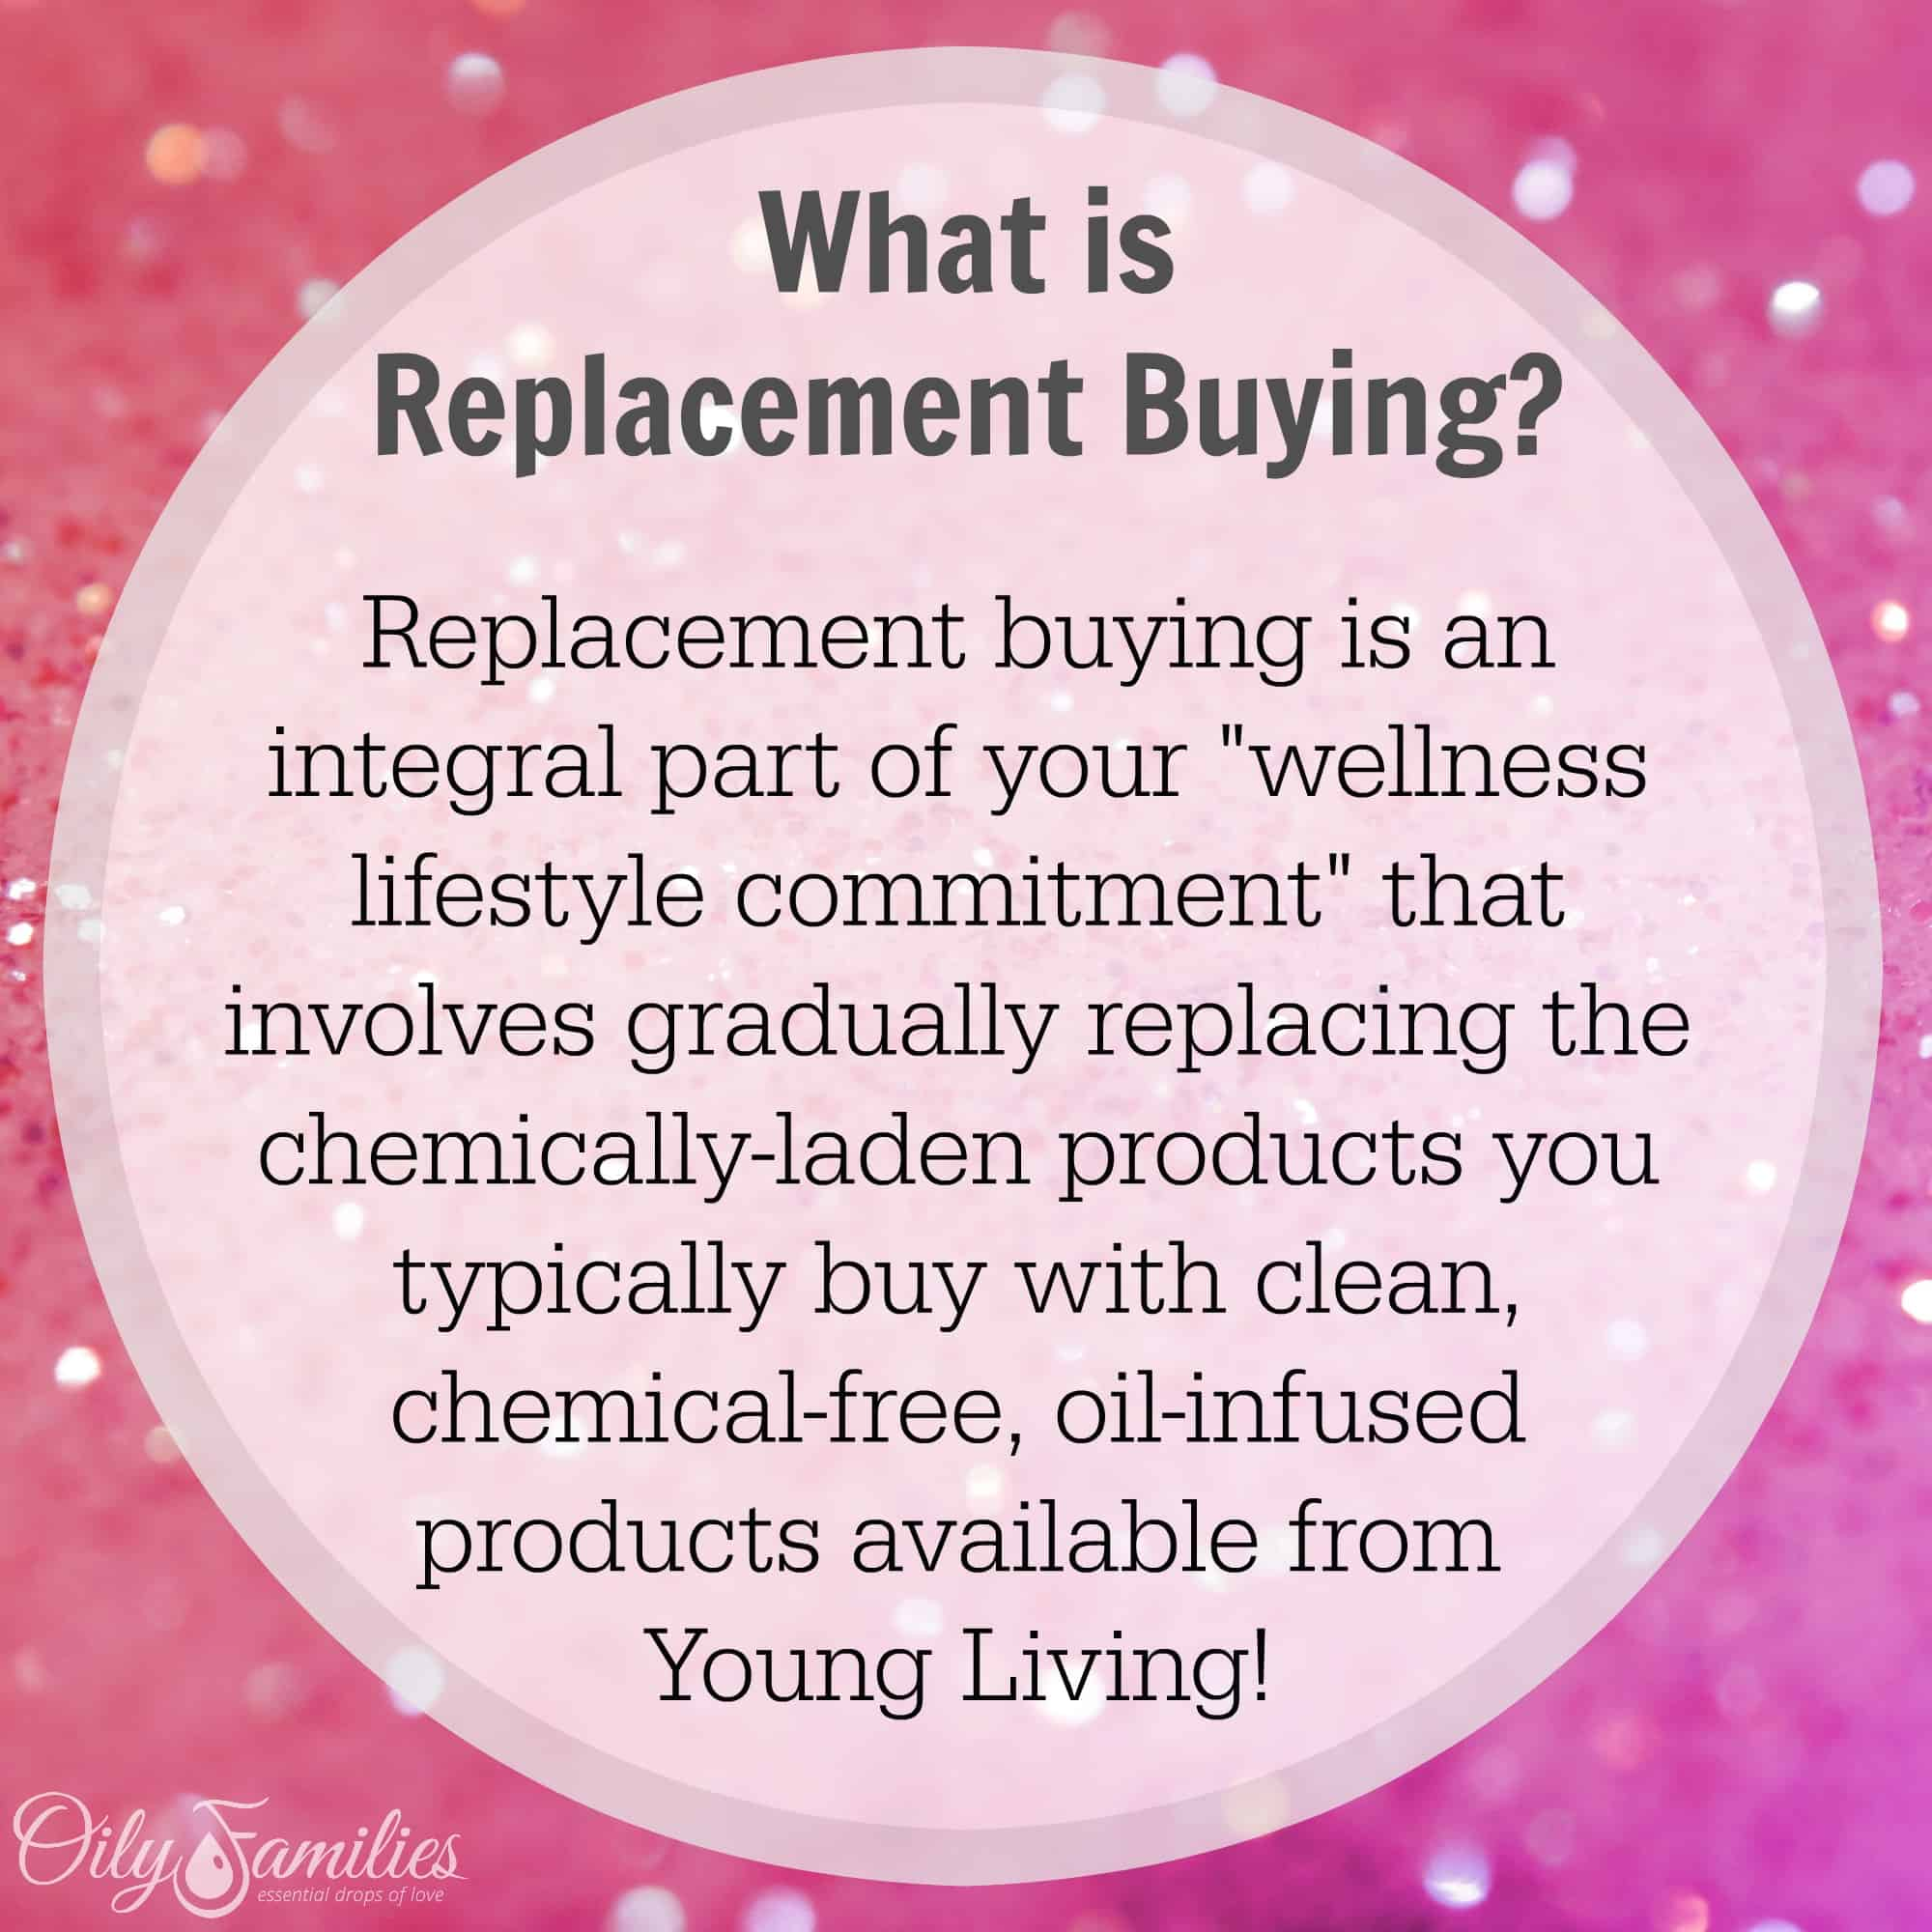 OF Replacement Buying